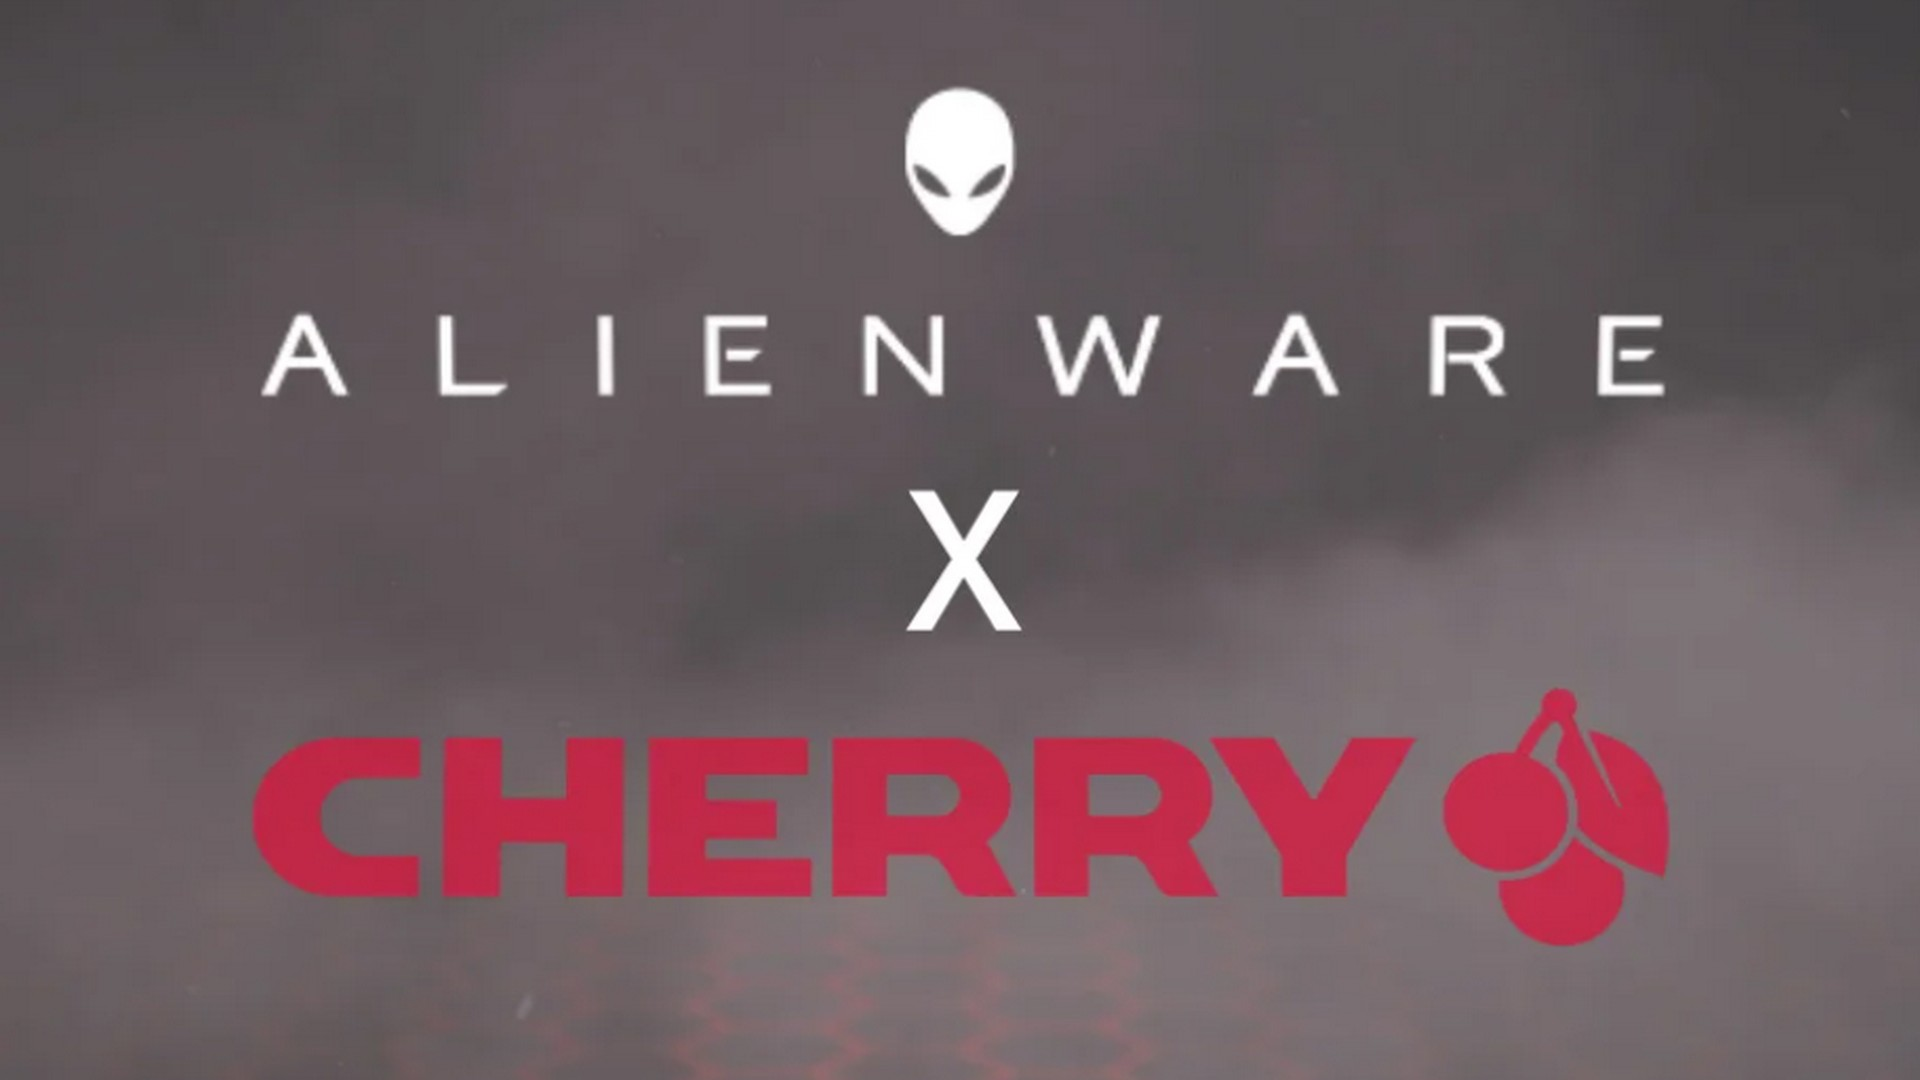 Alienware Brings DeLorean-Inspired CHERRY MX Keyboards To Their Flagship Laptops